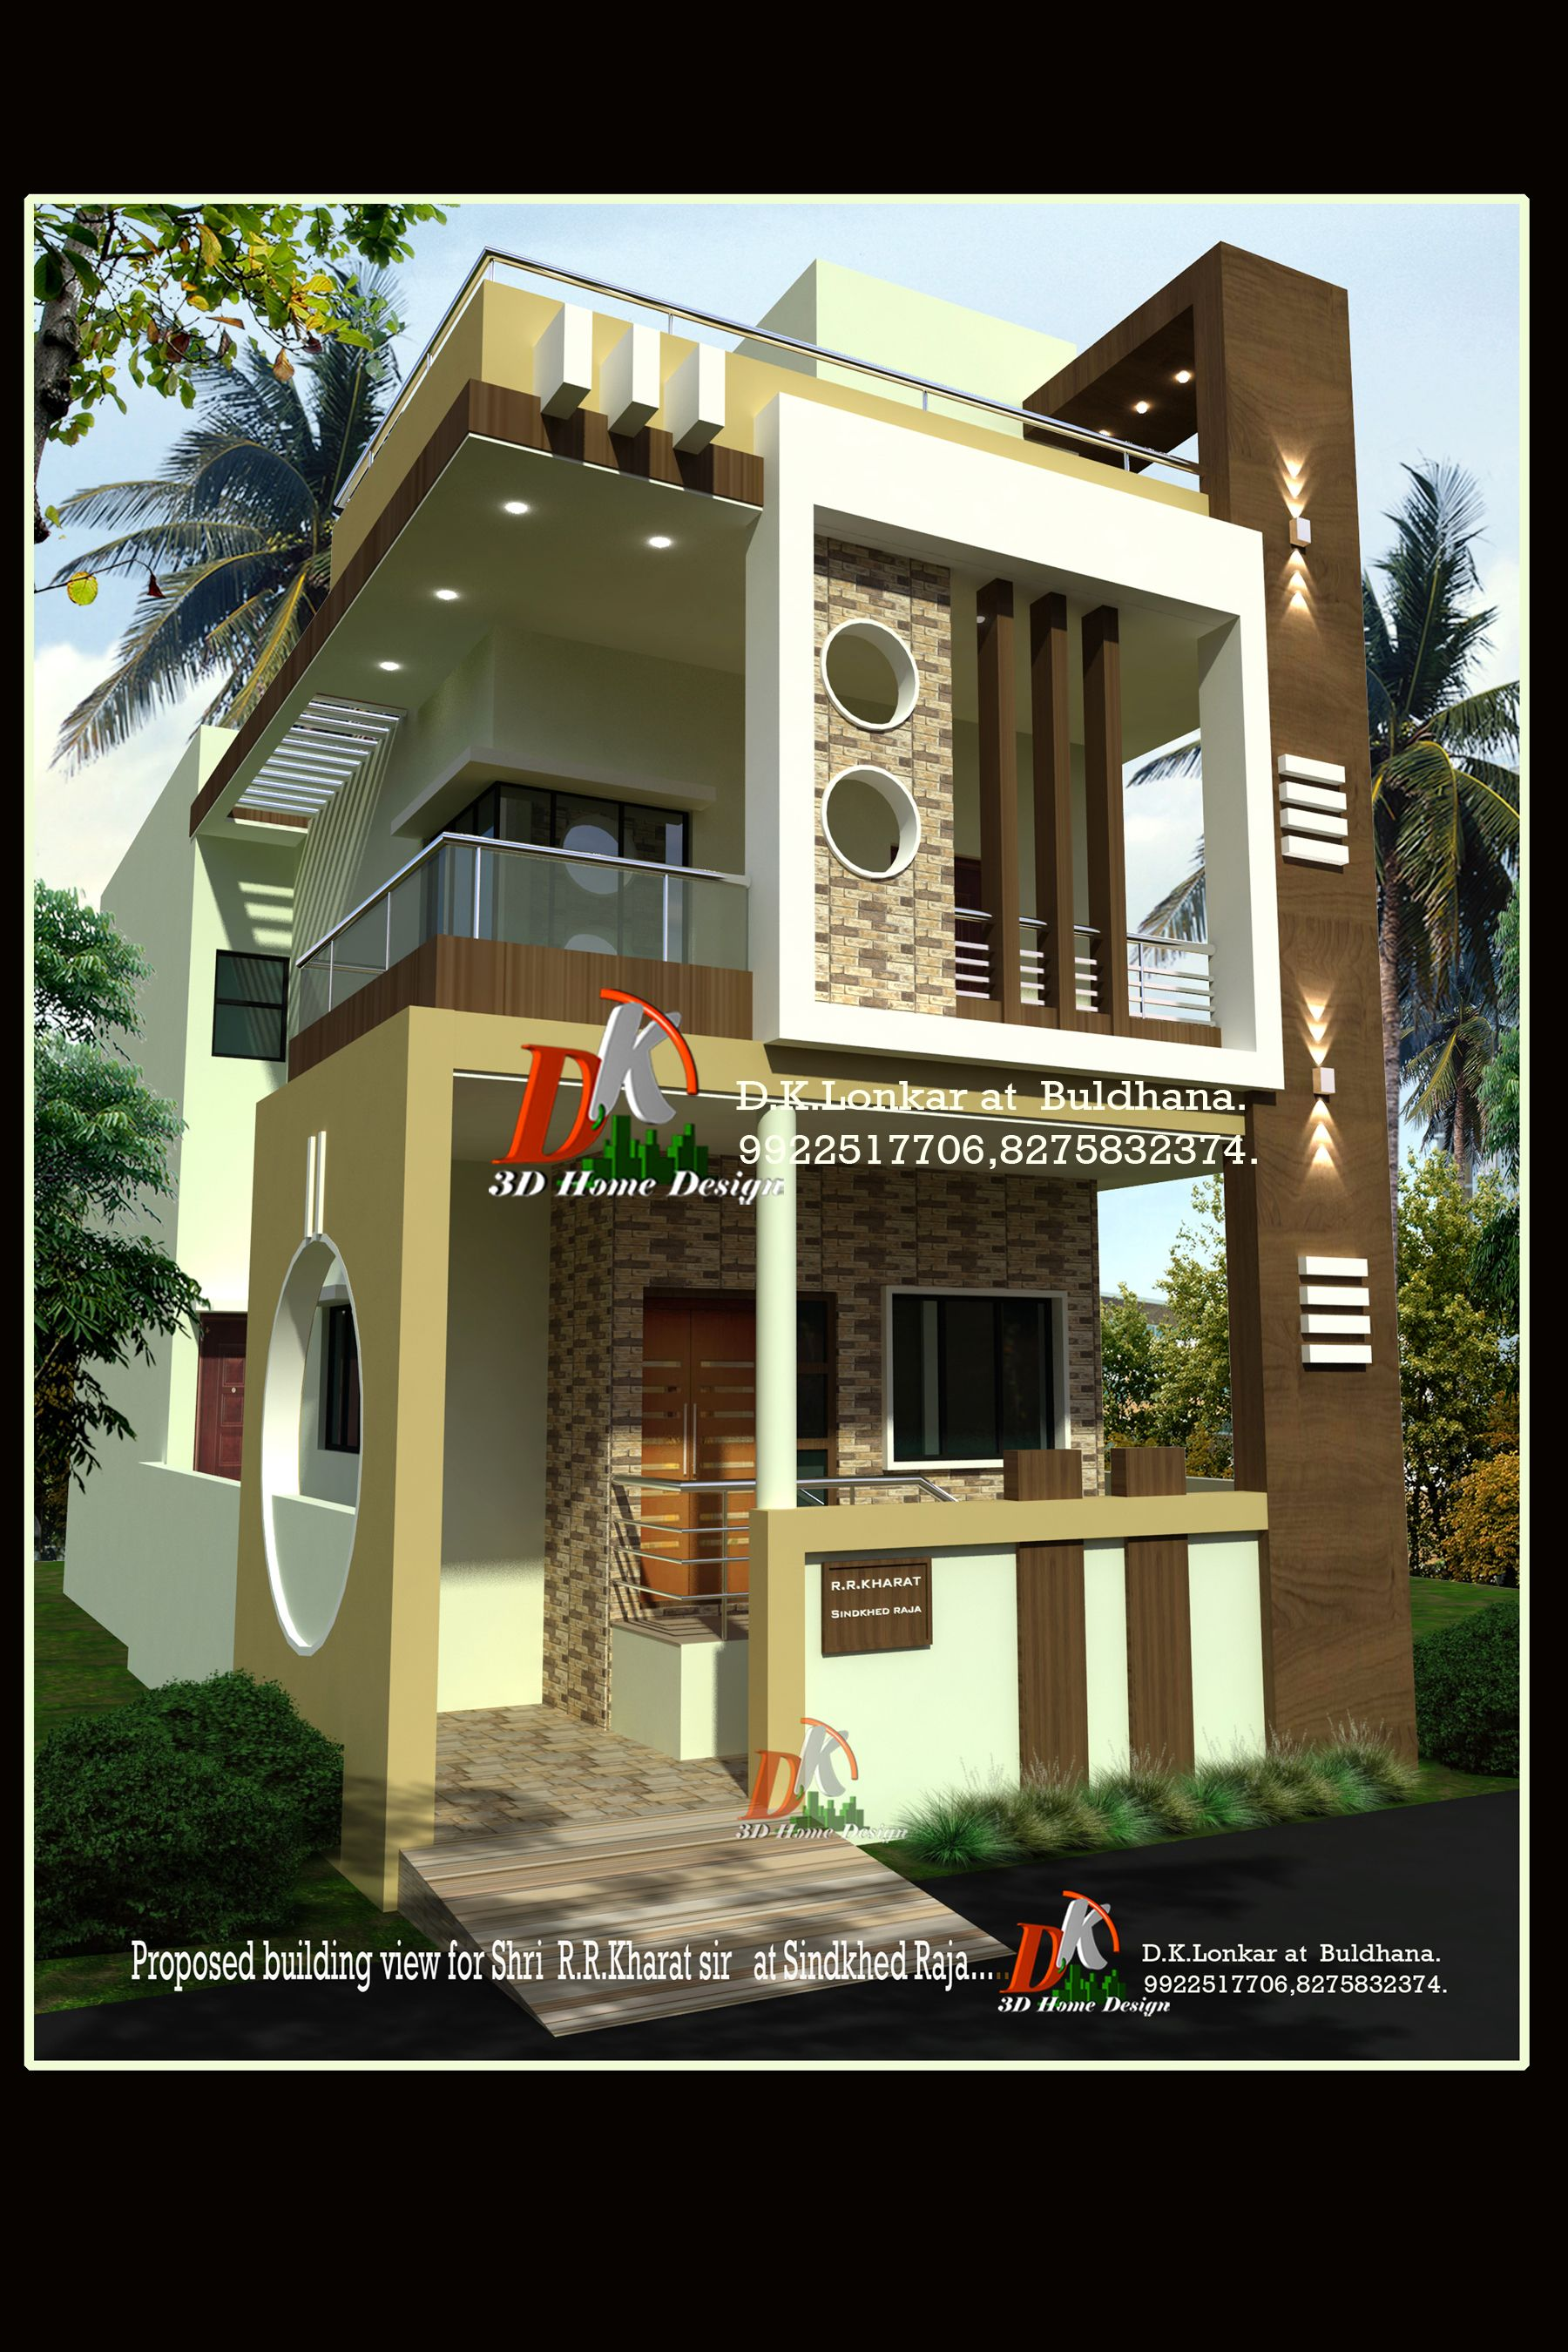 03a86580f943affd40807b8fc72a3a76 Jpg 1800 2700 Small House Elevation Design Small House Front Design Kerala House Design